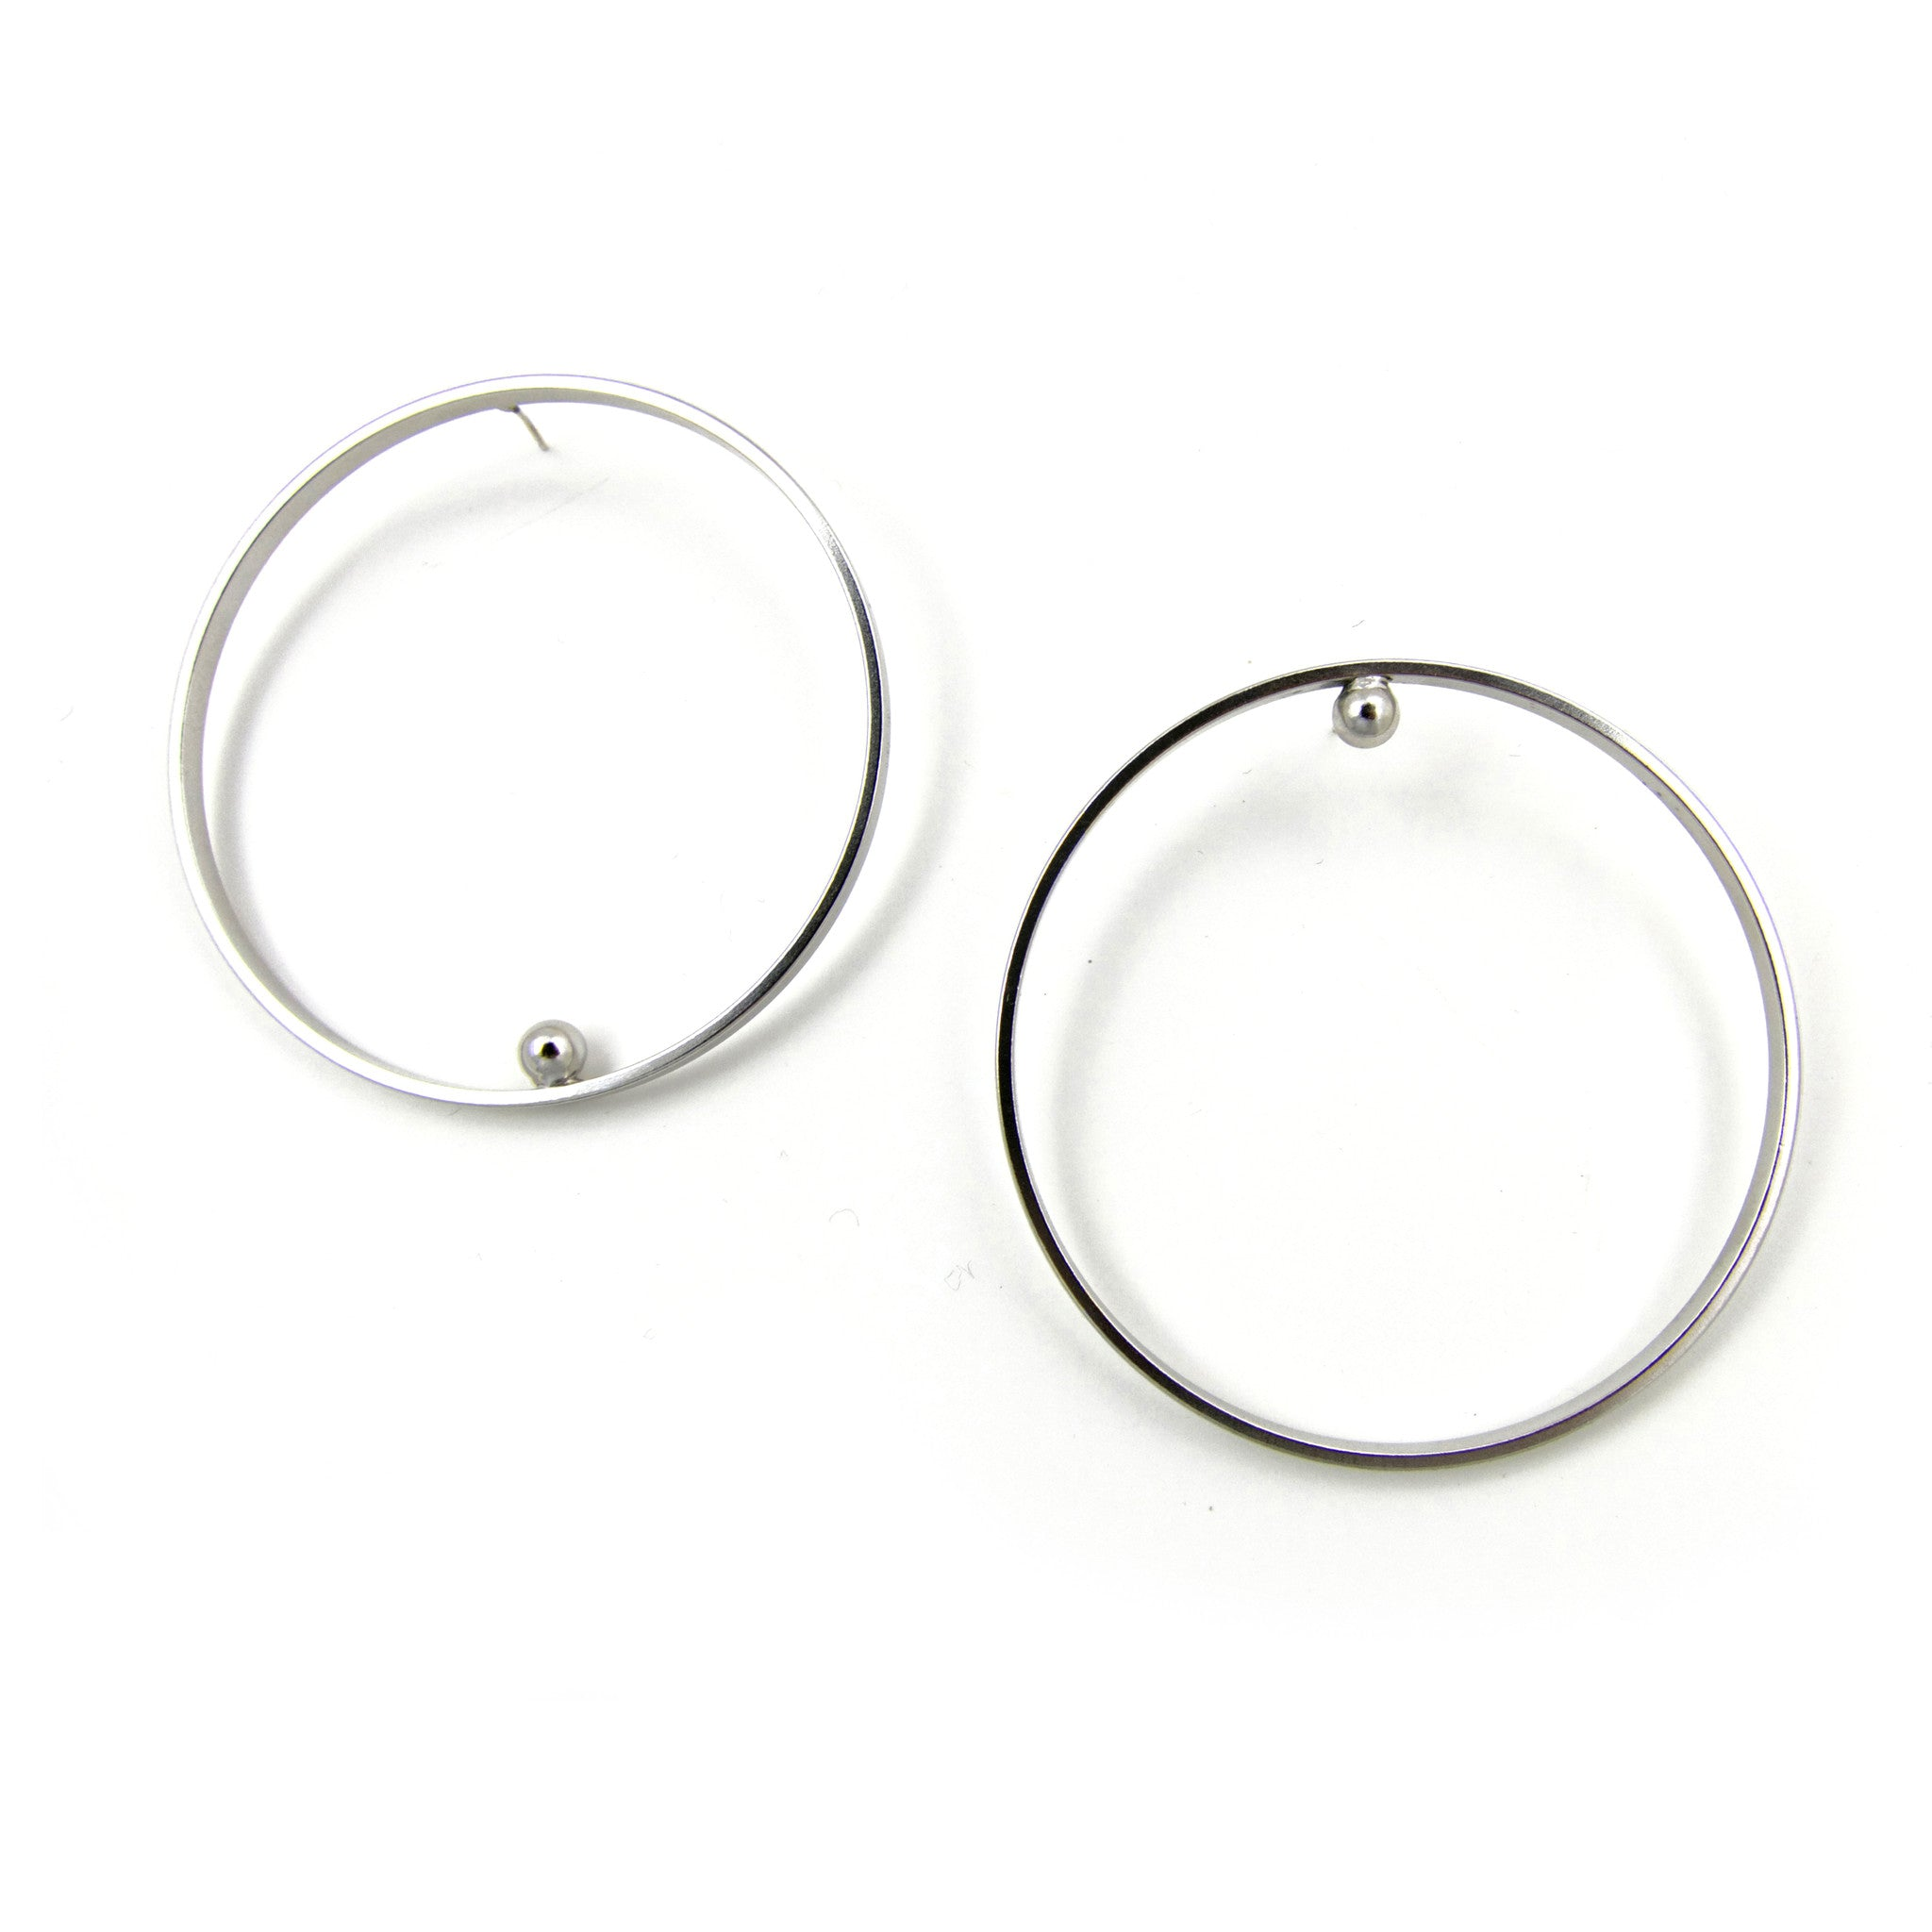 Orbit Hoops SOLD OUT